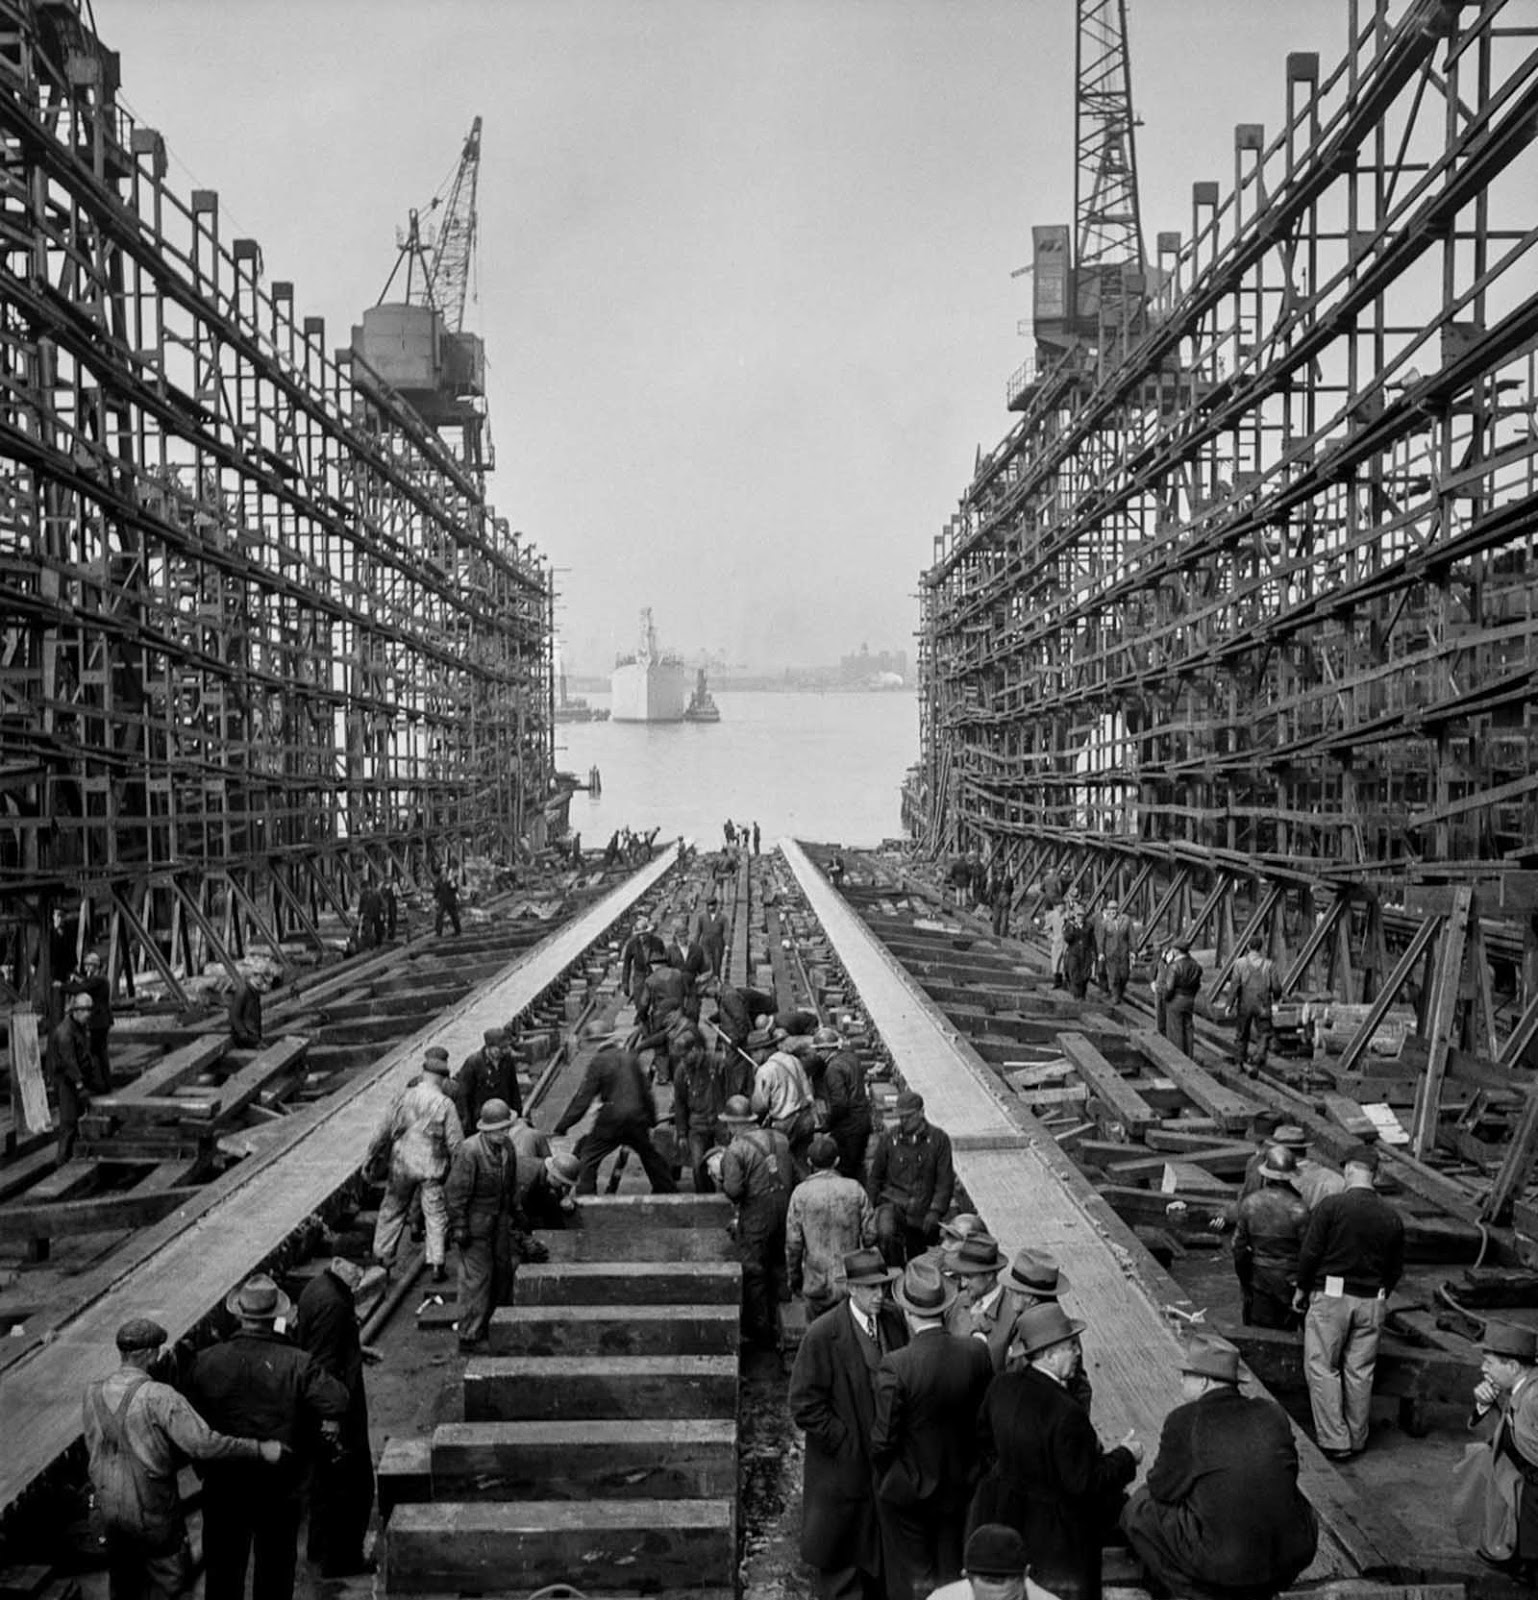 After a launch, workers fill the way and prepare to build another ship.